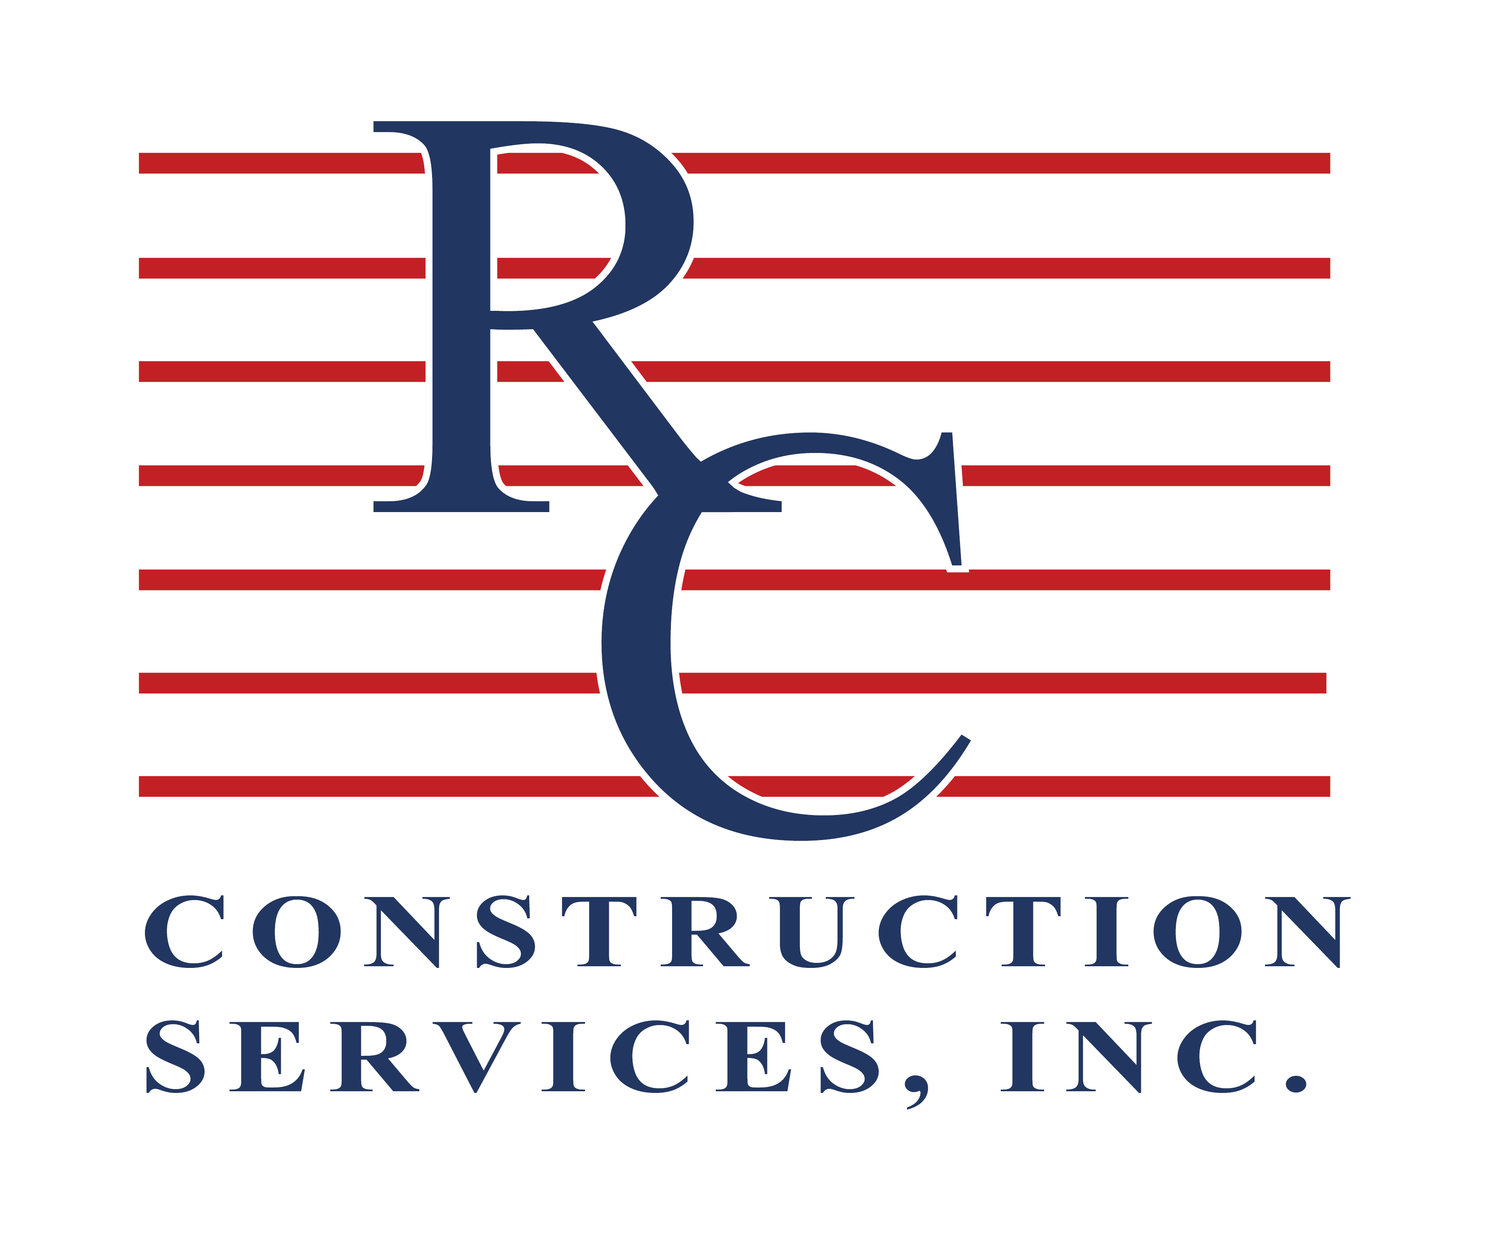 R.C. Construction Services